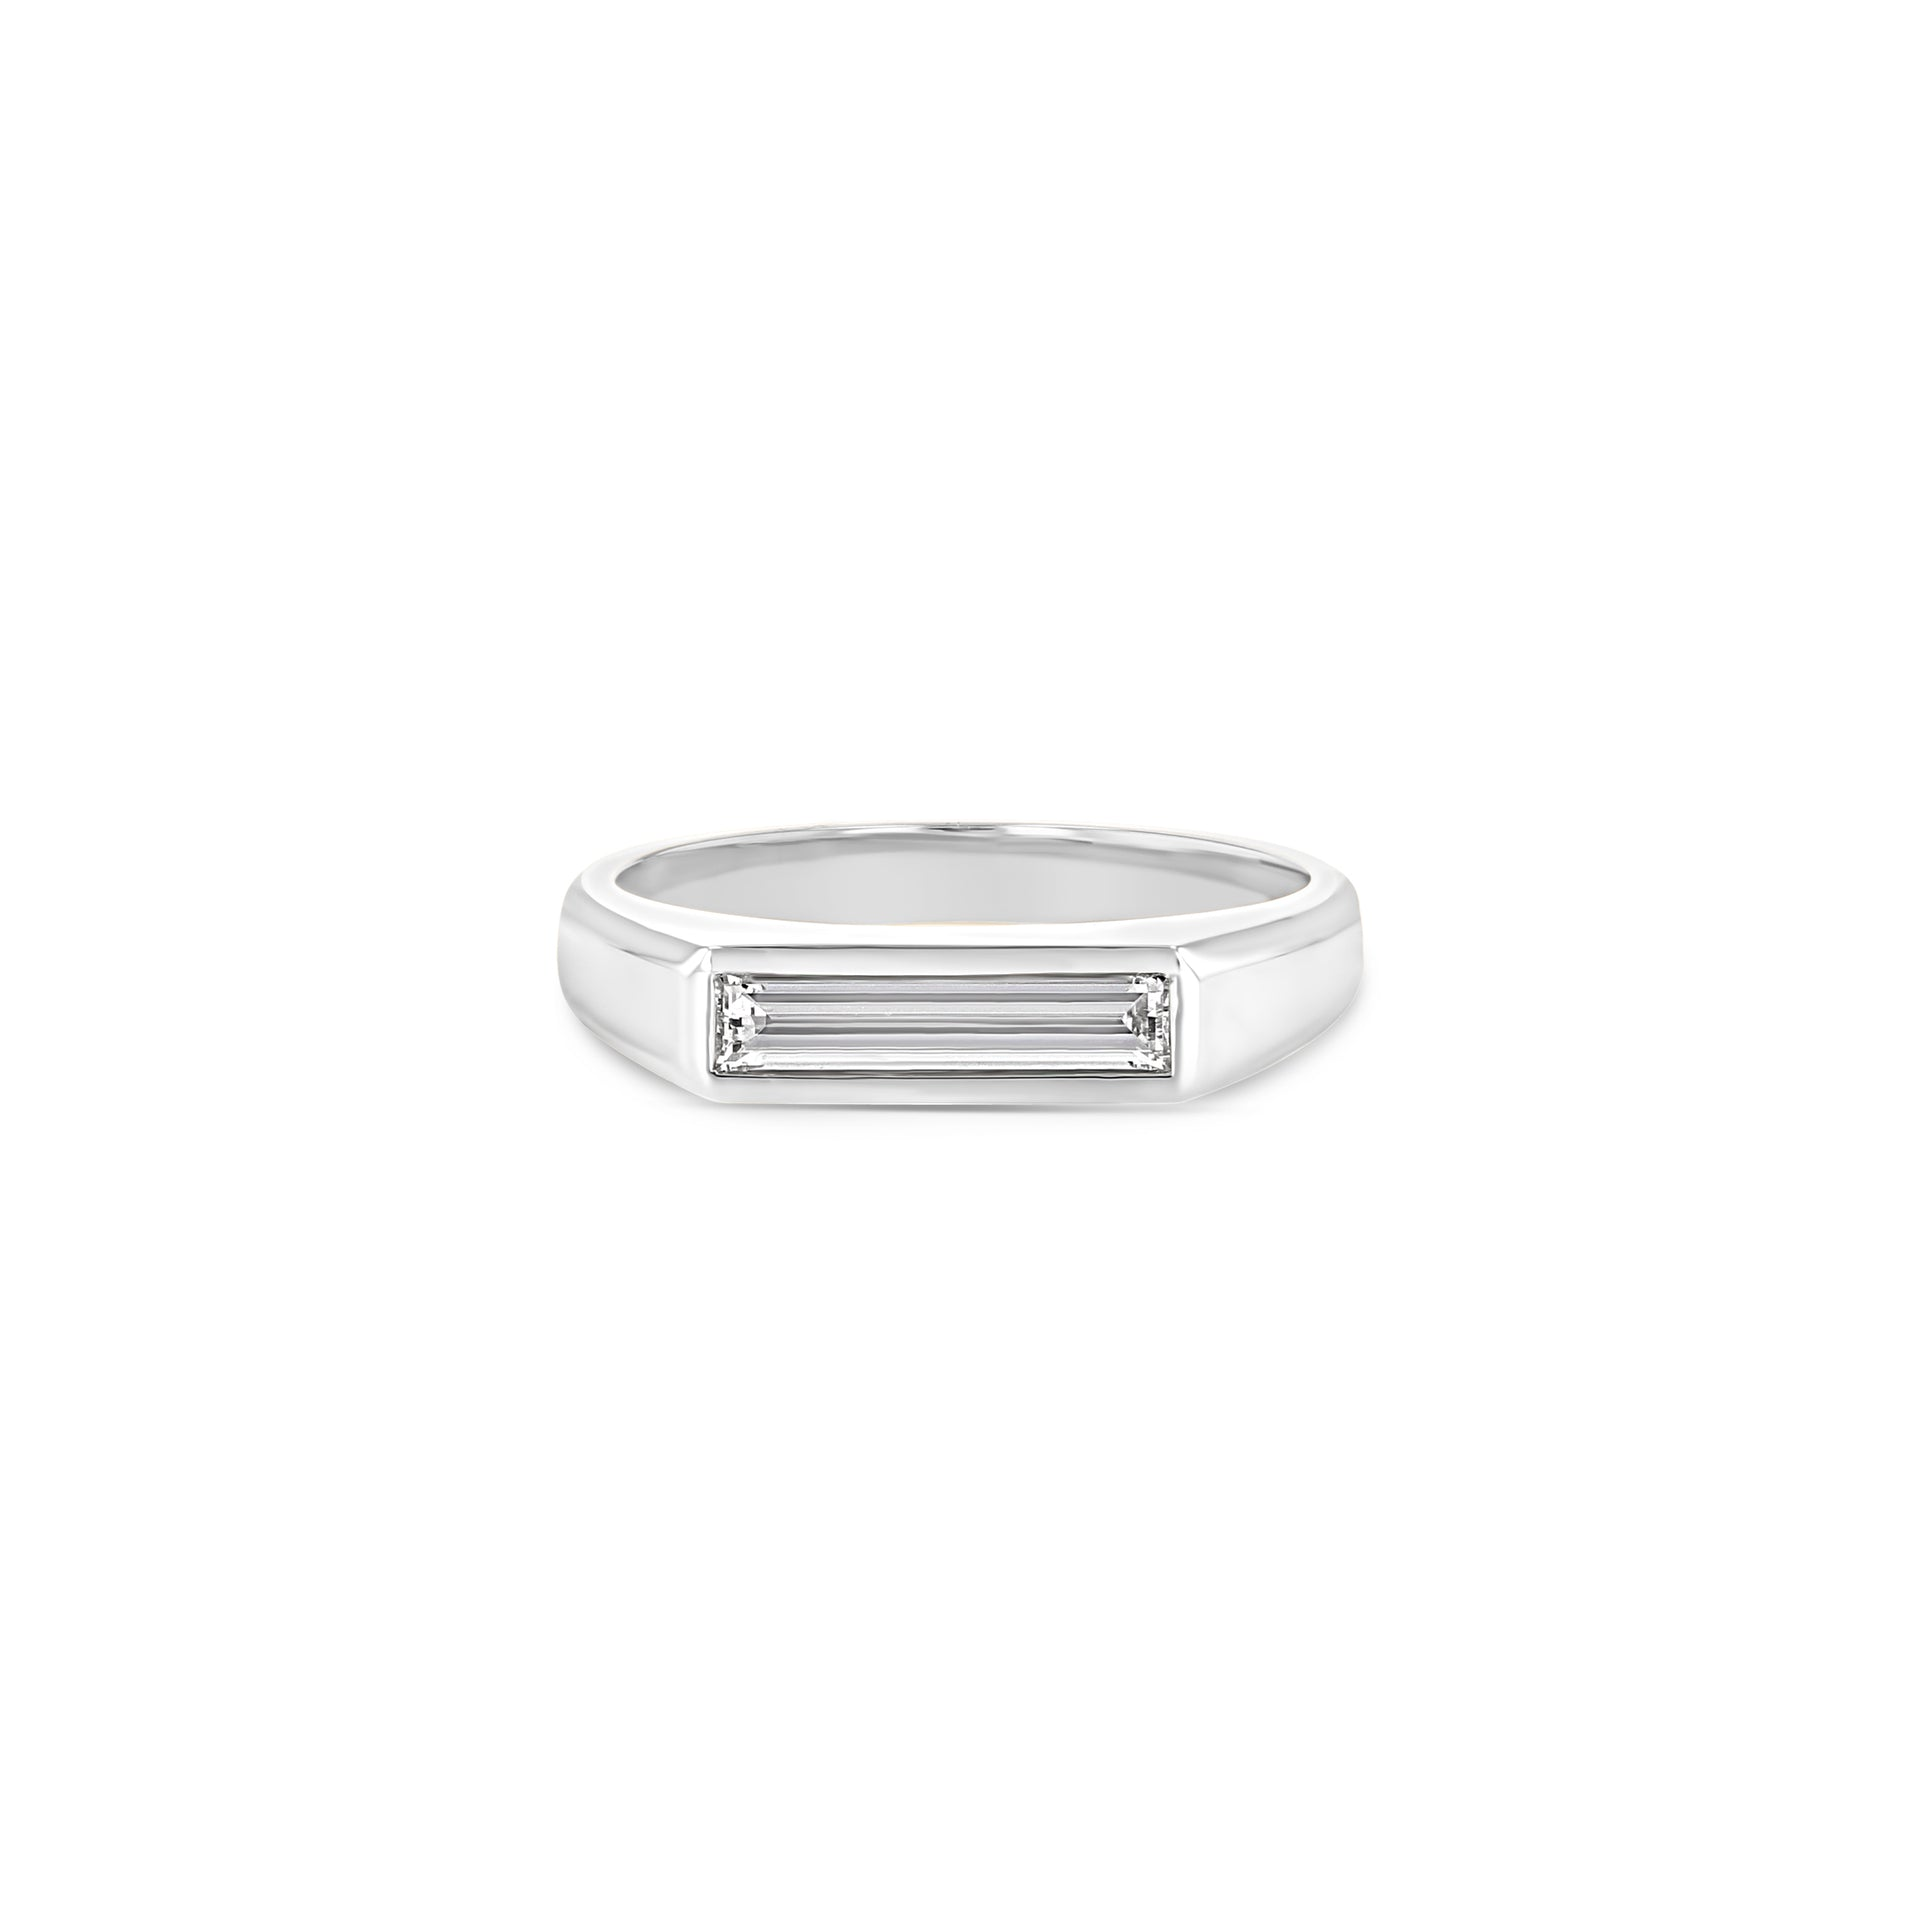 Diamond Baguette Signet Ring - Large